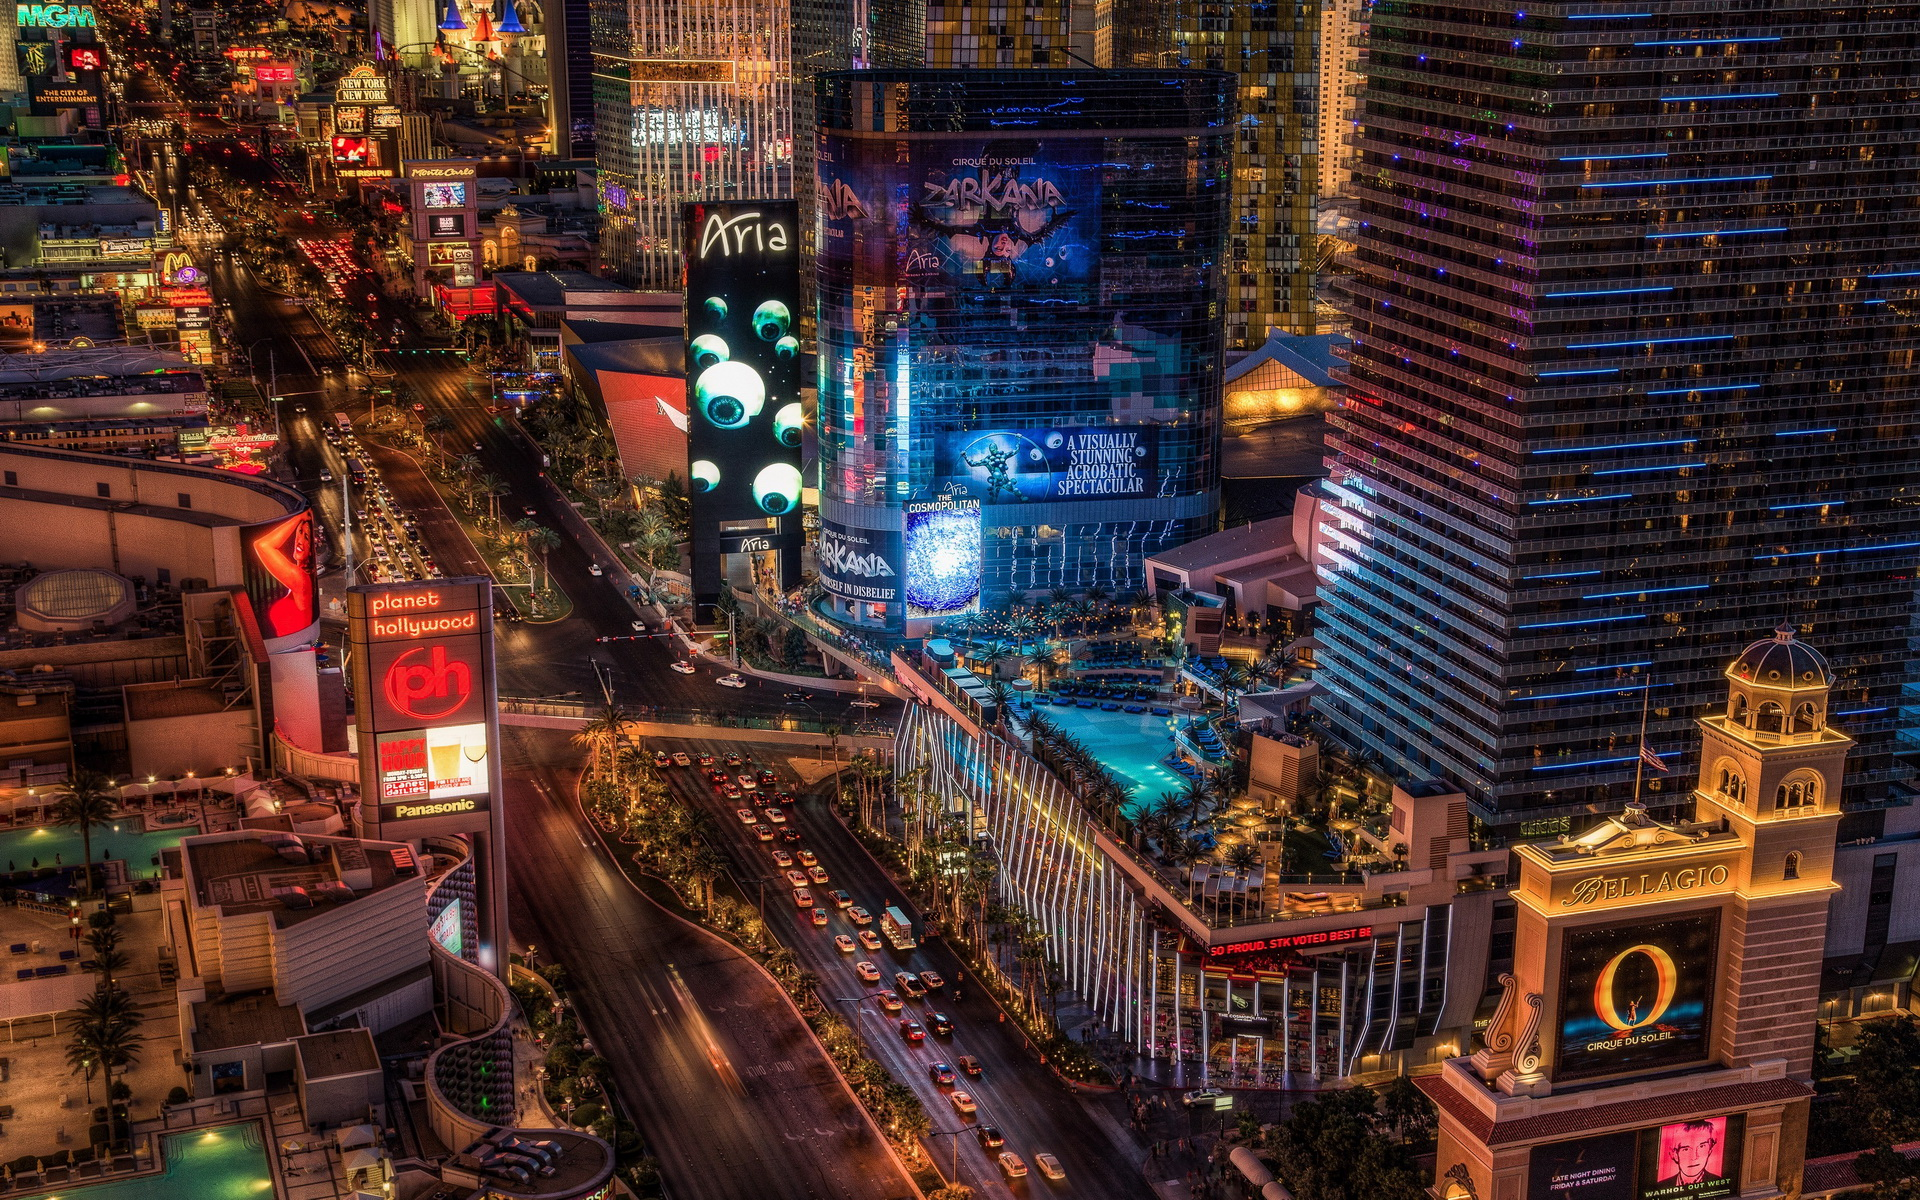 Las vegas hd wallpaper background image 1920x1200 id 529271 wallpaper abyss - Las vegas wallpaper 4k ...